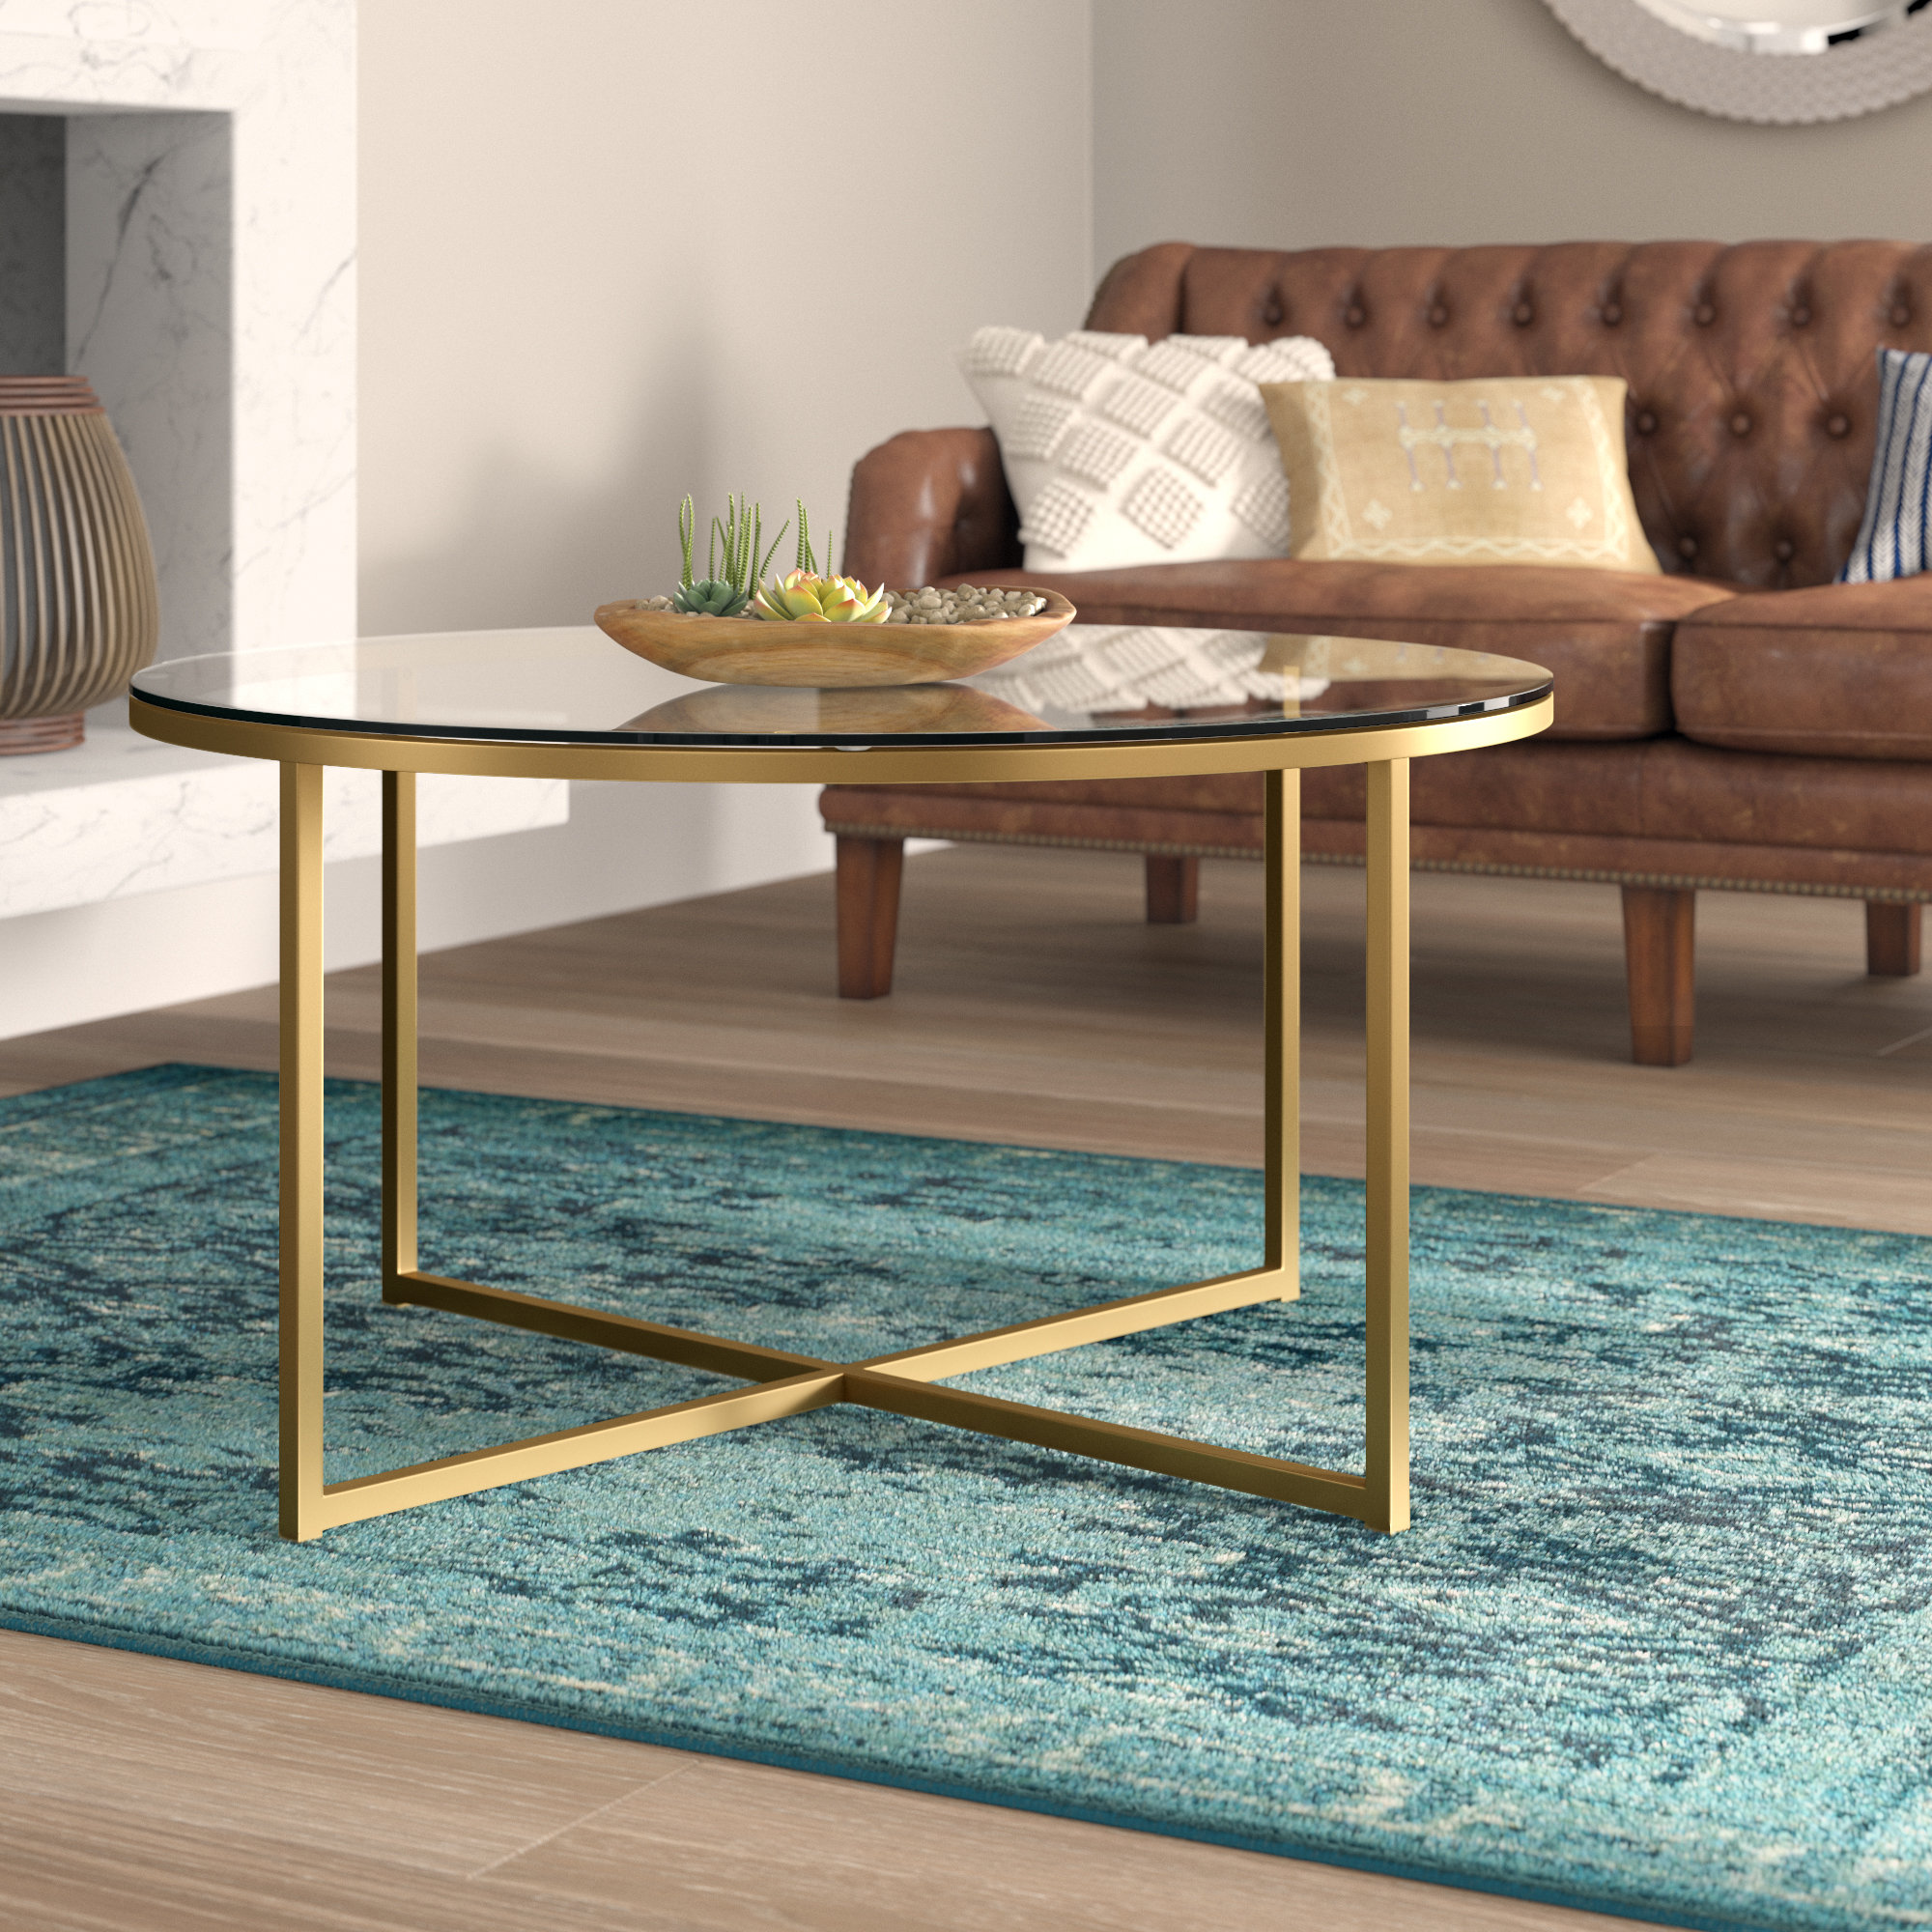 zara coffee table reviews accent corner patio umbrella small square end target bench seat mango wood west elm white lamps three drawer side gold mirrored inch round vinyl